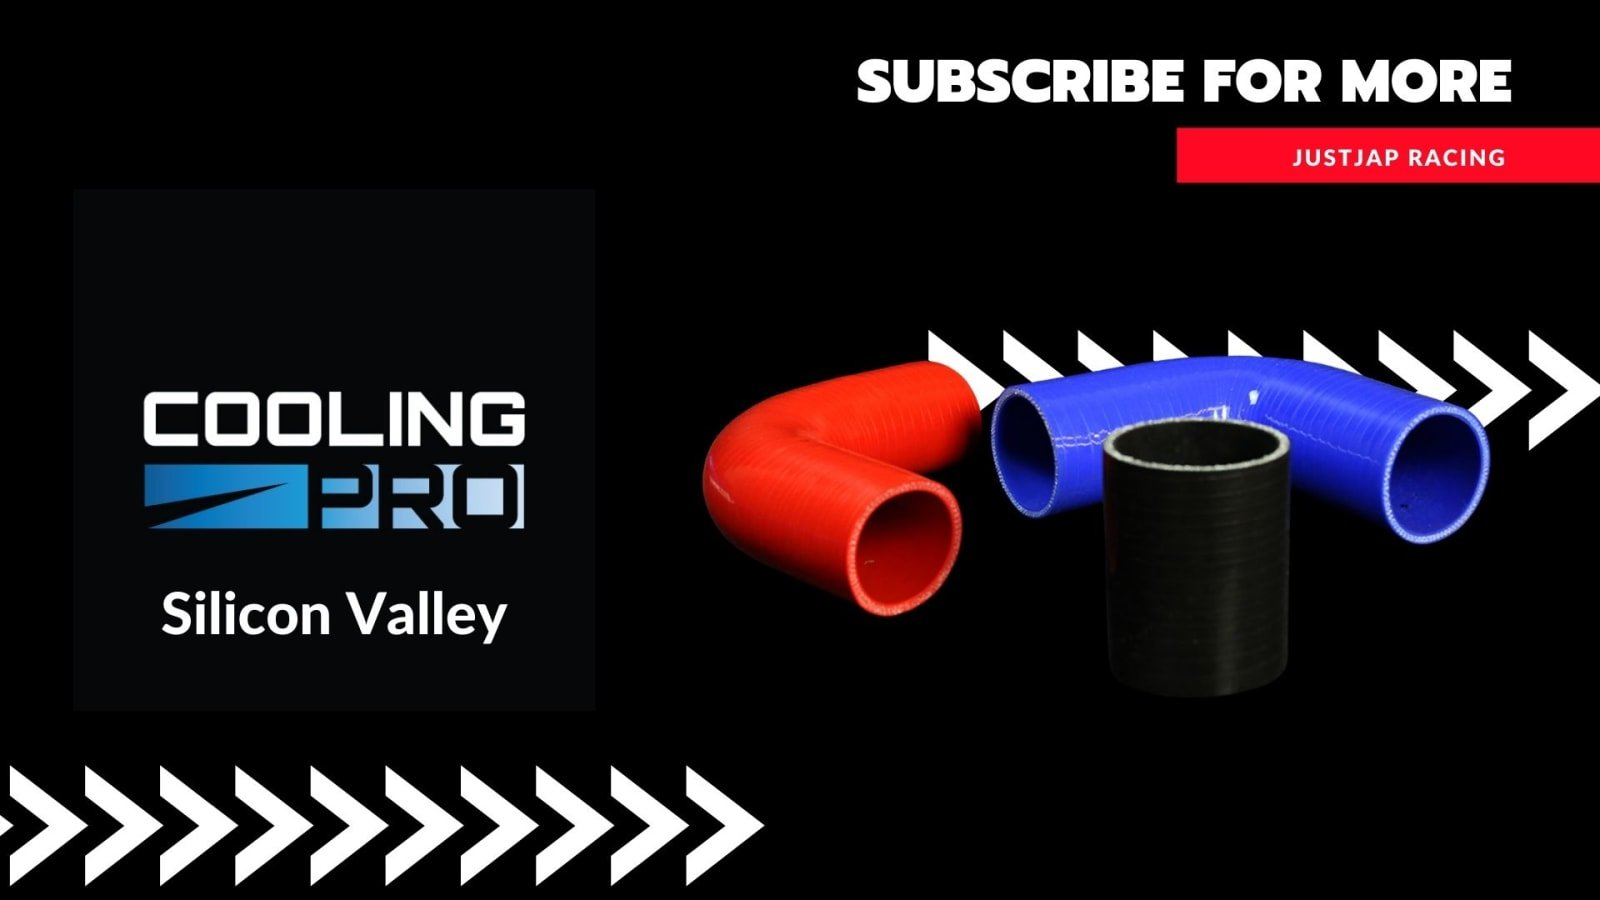 Cooling Pro Silicone 1 Inch / 25mm T-Piece Joiner Hose